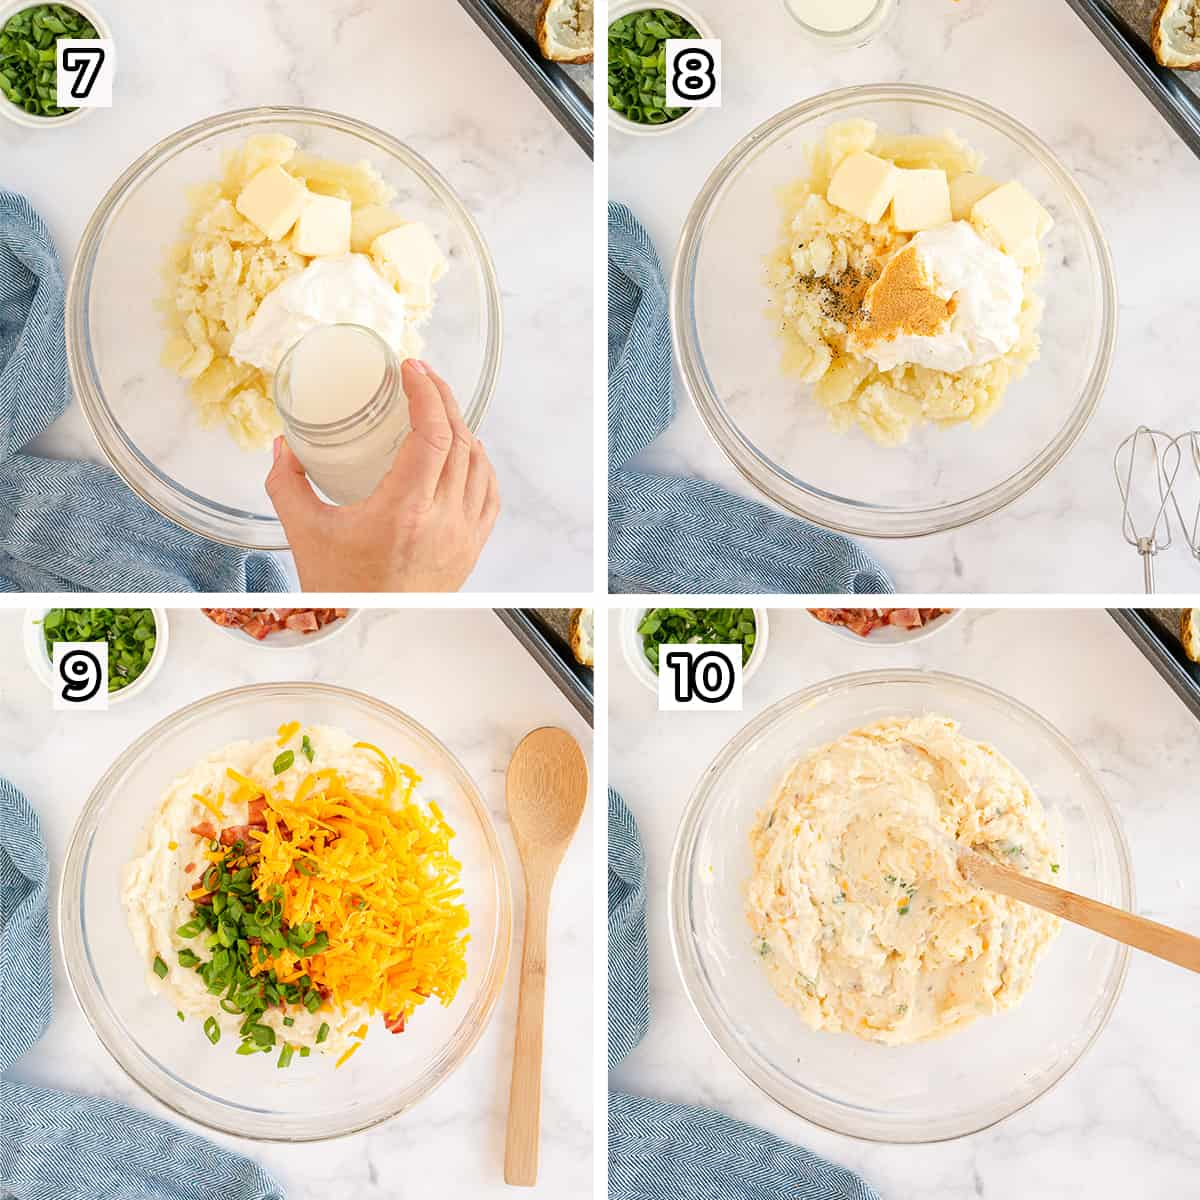 Potato is combined with ingredients in a mixing bowl.